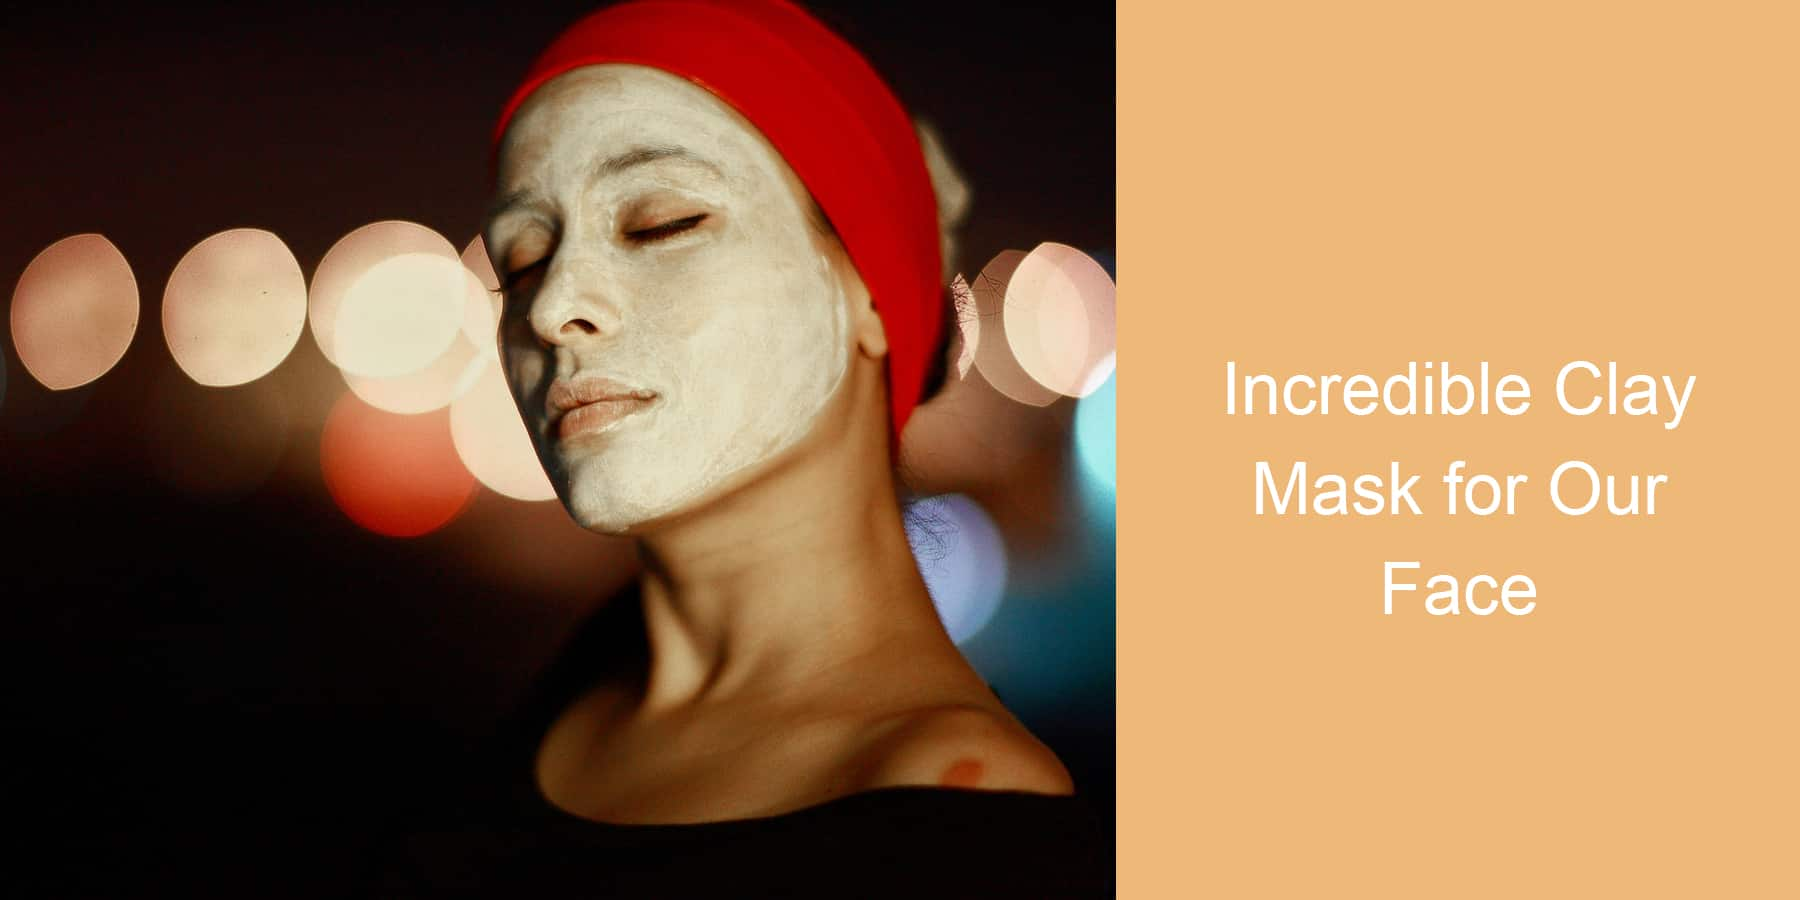 Incredible Clay Mask for Your Face